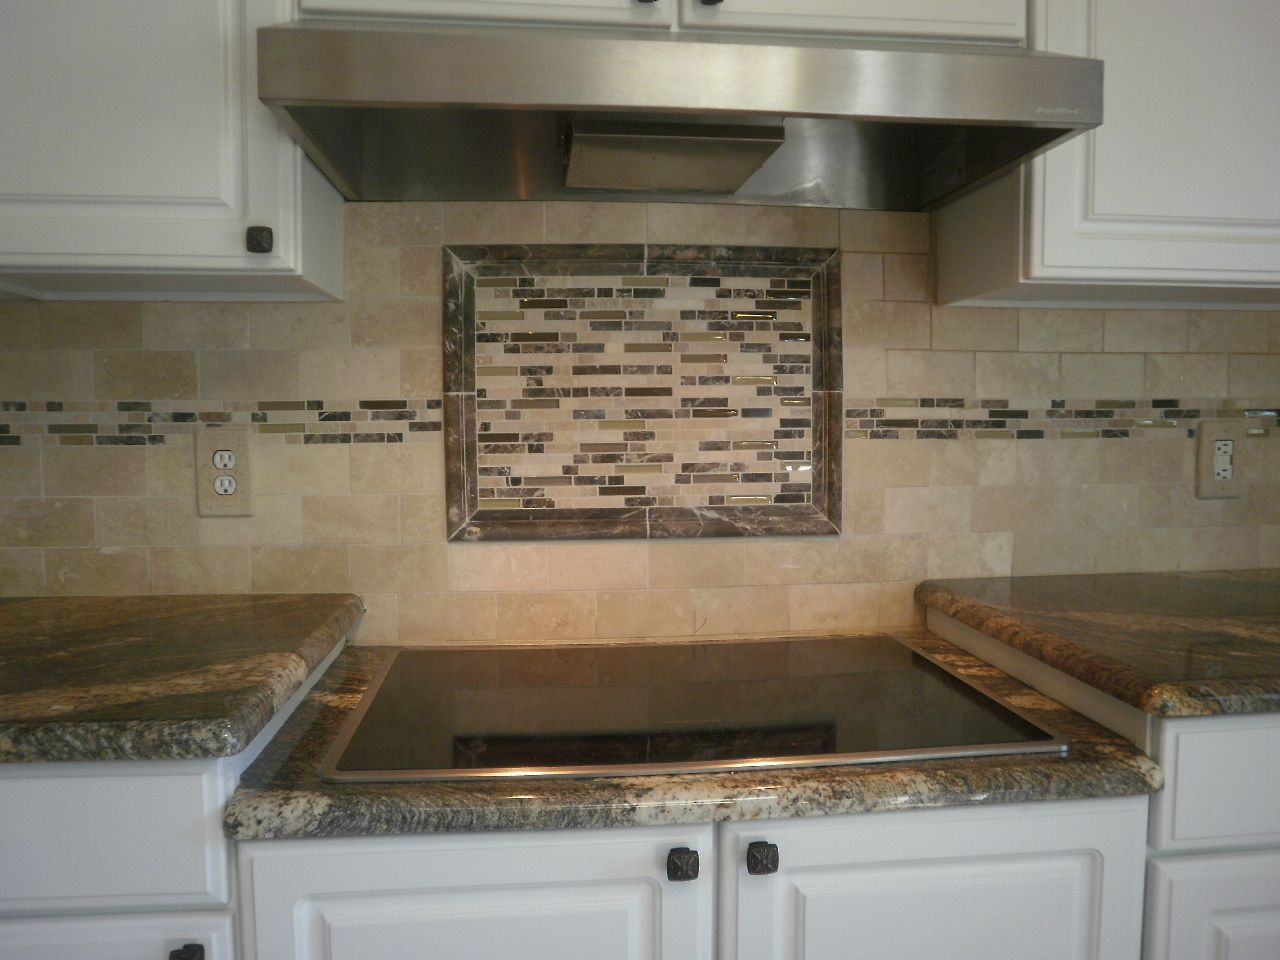 Porcelain Tile Kitchen Backsplash Travertine With Inlaid Rectangular Mosaic Tiles At Destefano